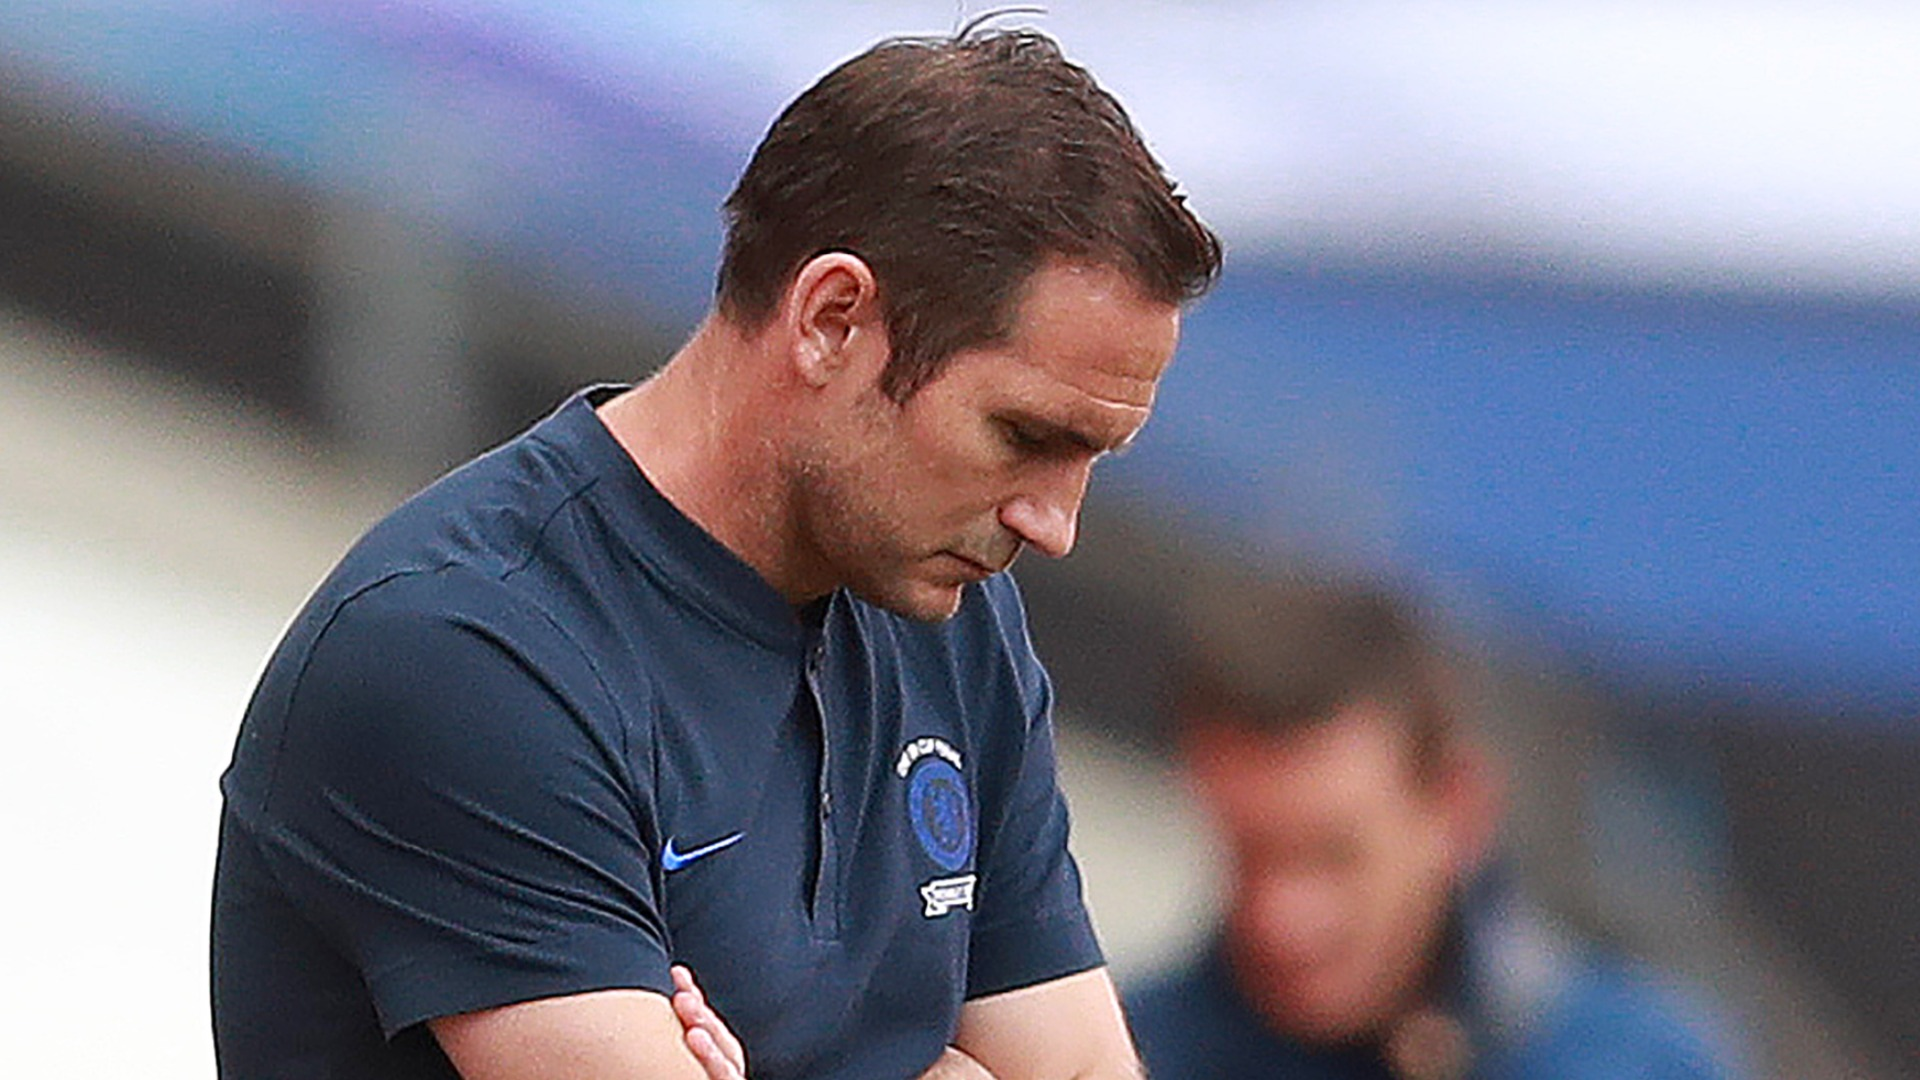 Chelsea sack Lampard: Five games that showed Blues legend was out of his depth